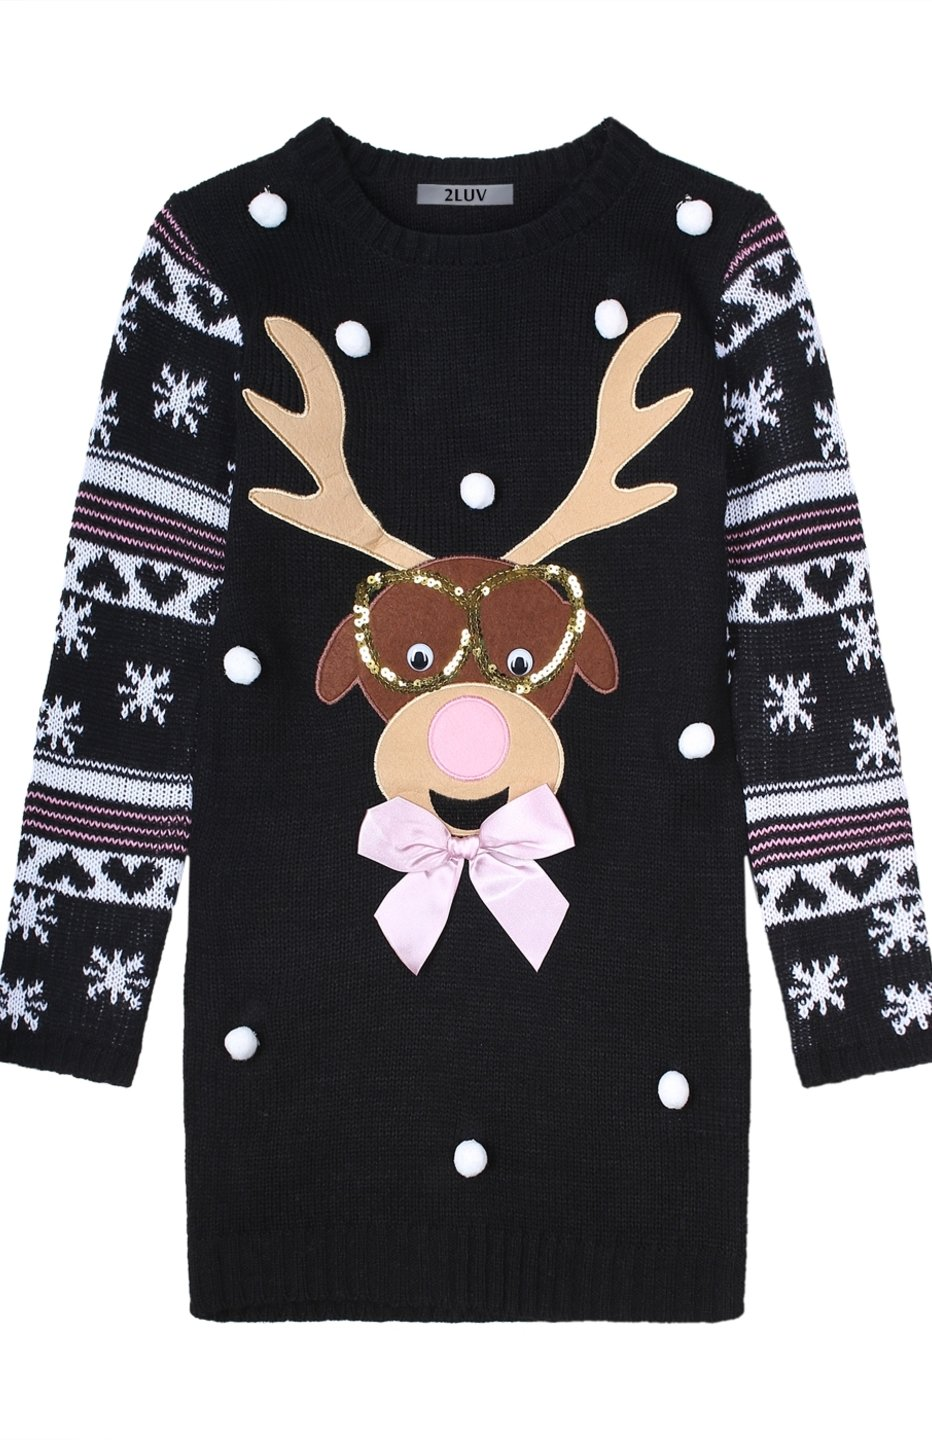 2LUV Girl's Cute Ugly Comfy Christmas Holiday Themed Sweater Black M